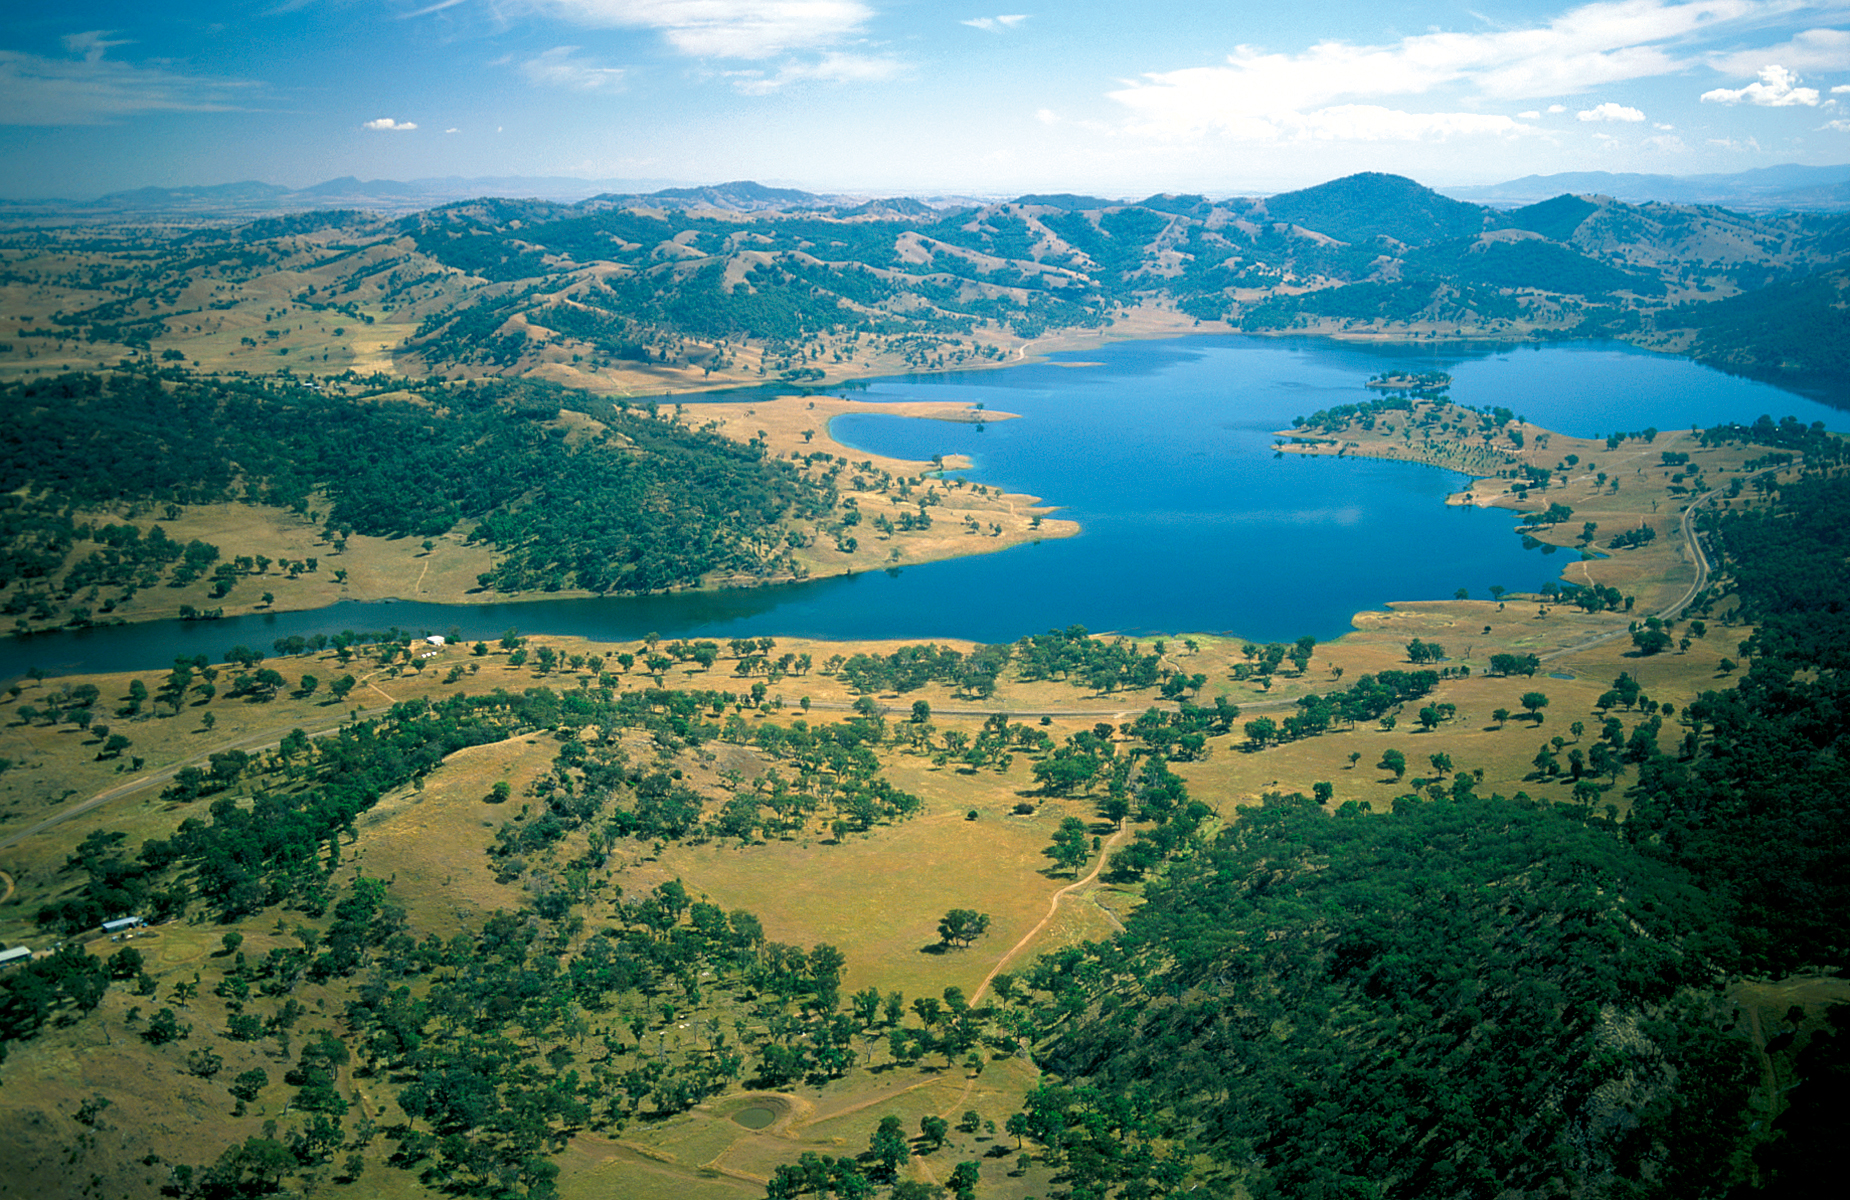 Aerial view of the Peel River running into the Chaffey Dam, NSW. 1996.